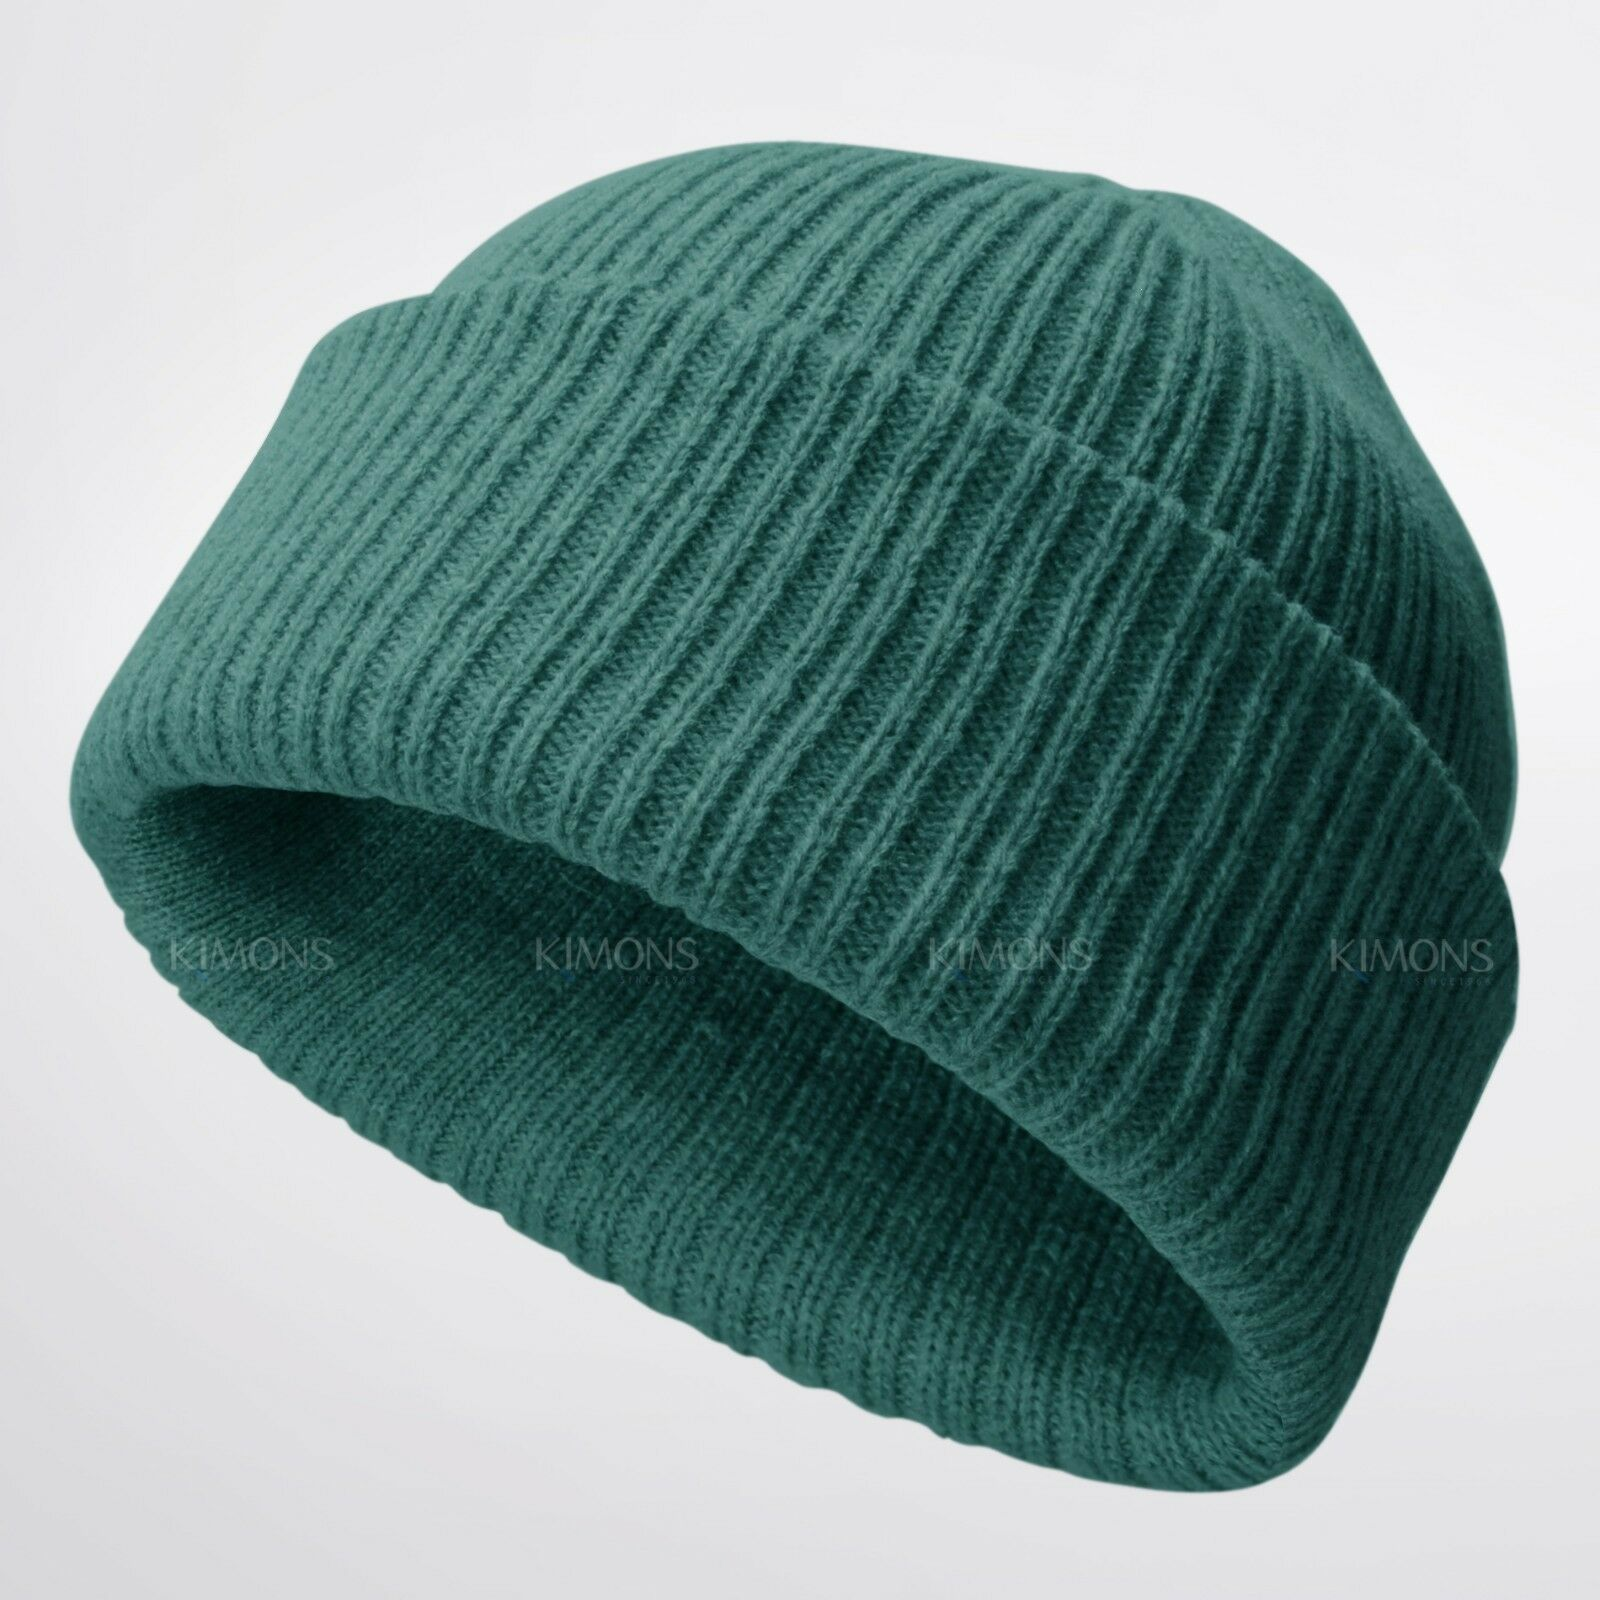 1392f8b76ef8c5 ... Warm Solid Color Winter Ribbed Thick Beanie Plain Knit Cuff Ski Cap  Skull Hat Warm Solid Color Winter Ribbed Thick Beanie Plain Knit Cuff Ski  Cap Skull ...